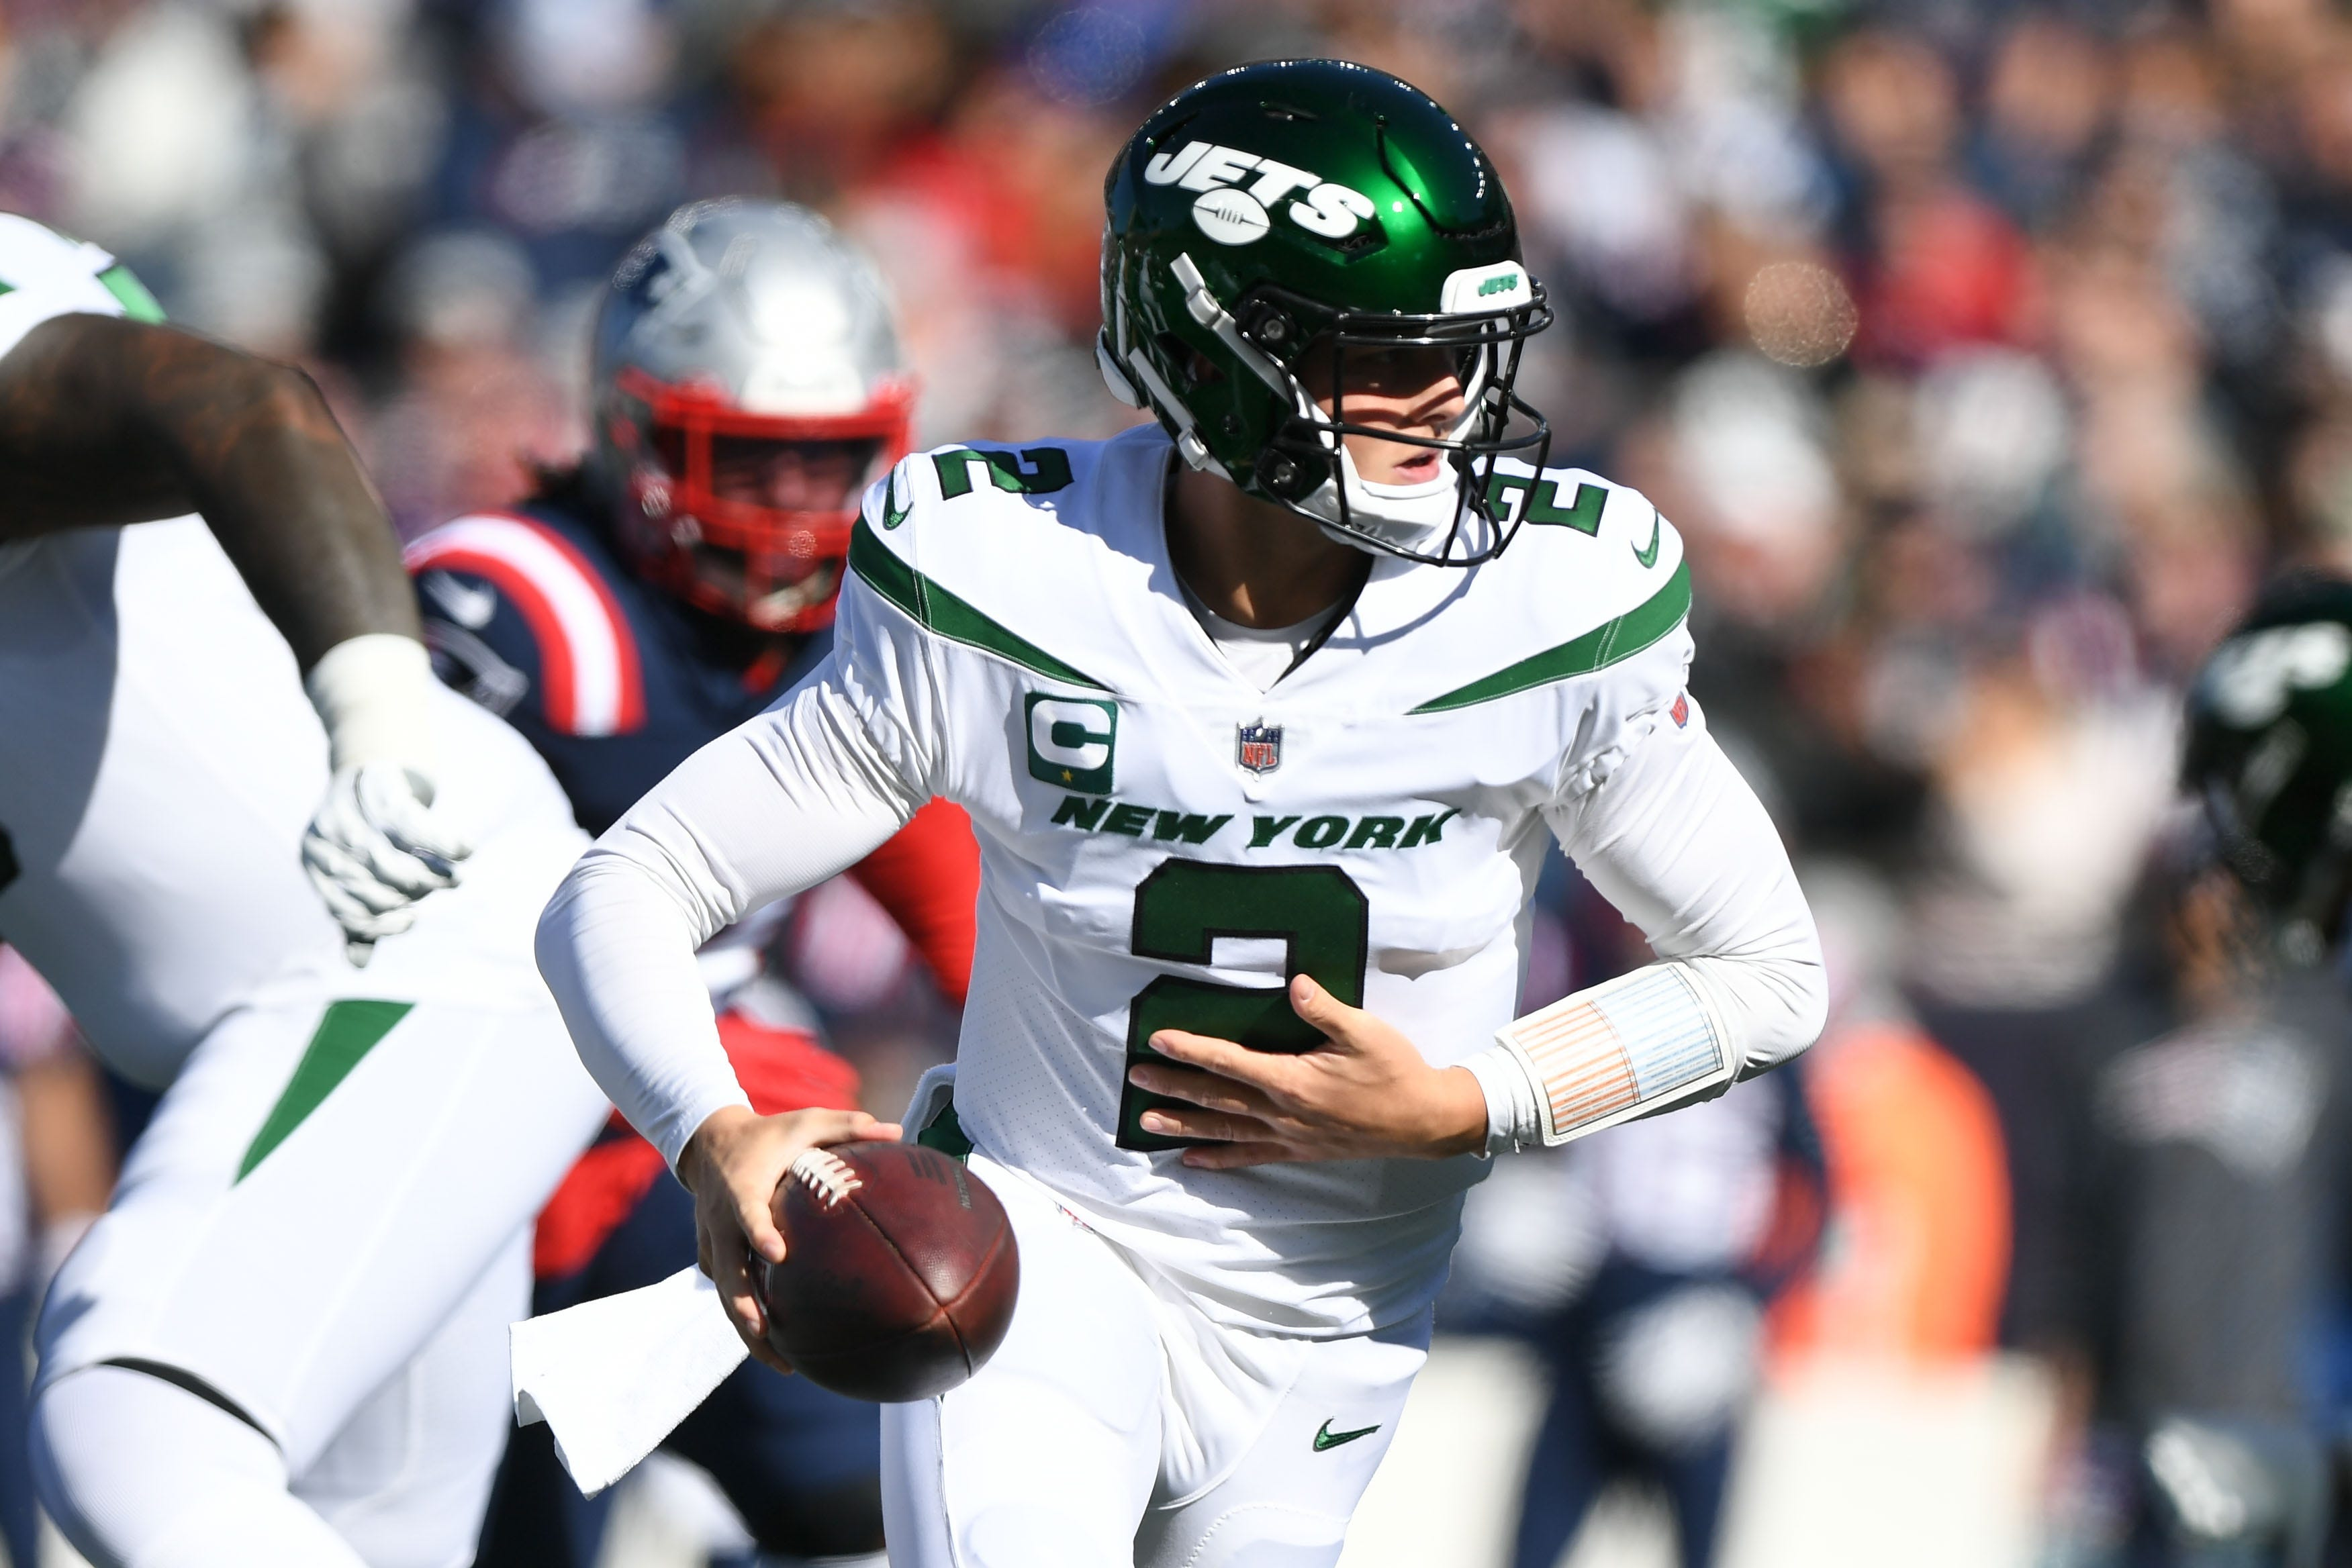 NY Jets' Zach Wilson knee injury will keep him out 2-4 weeks after MRI shows PCL sprain